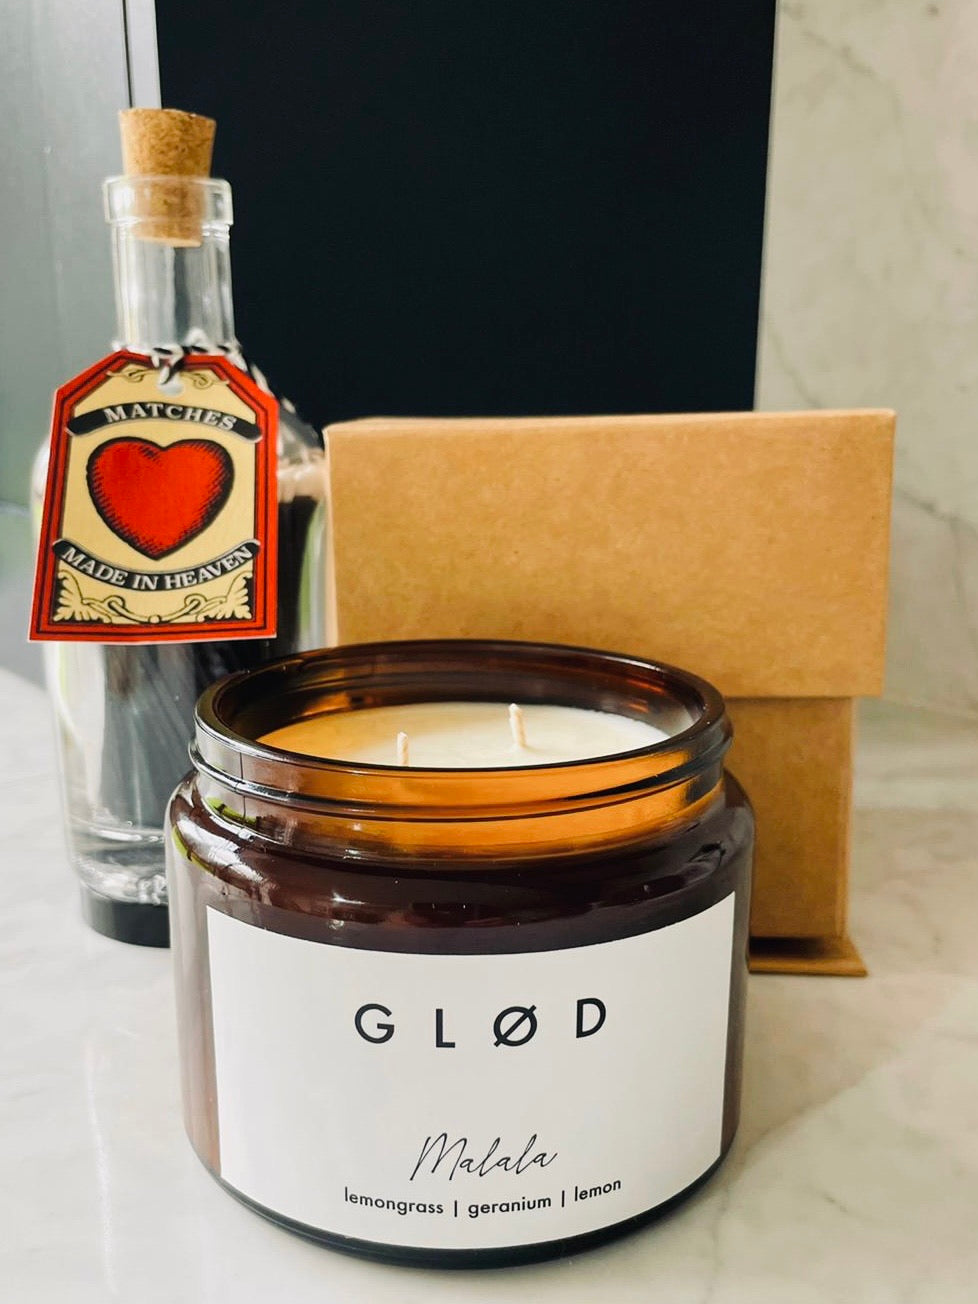 Large scented soy candle and matches in a bottle